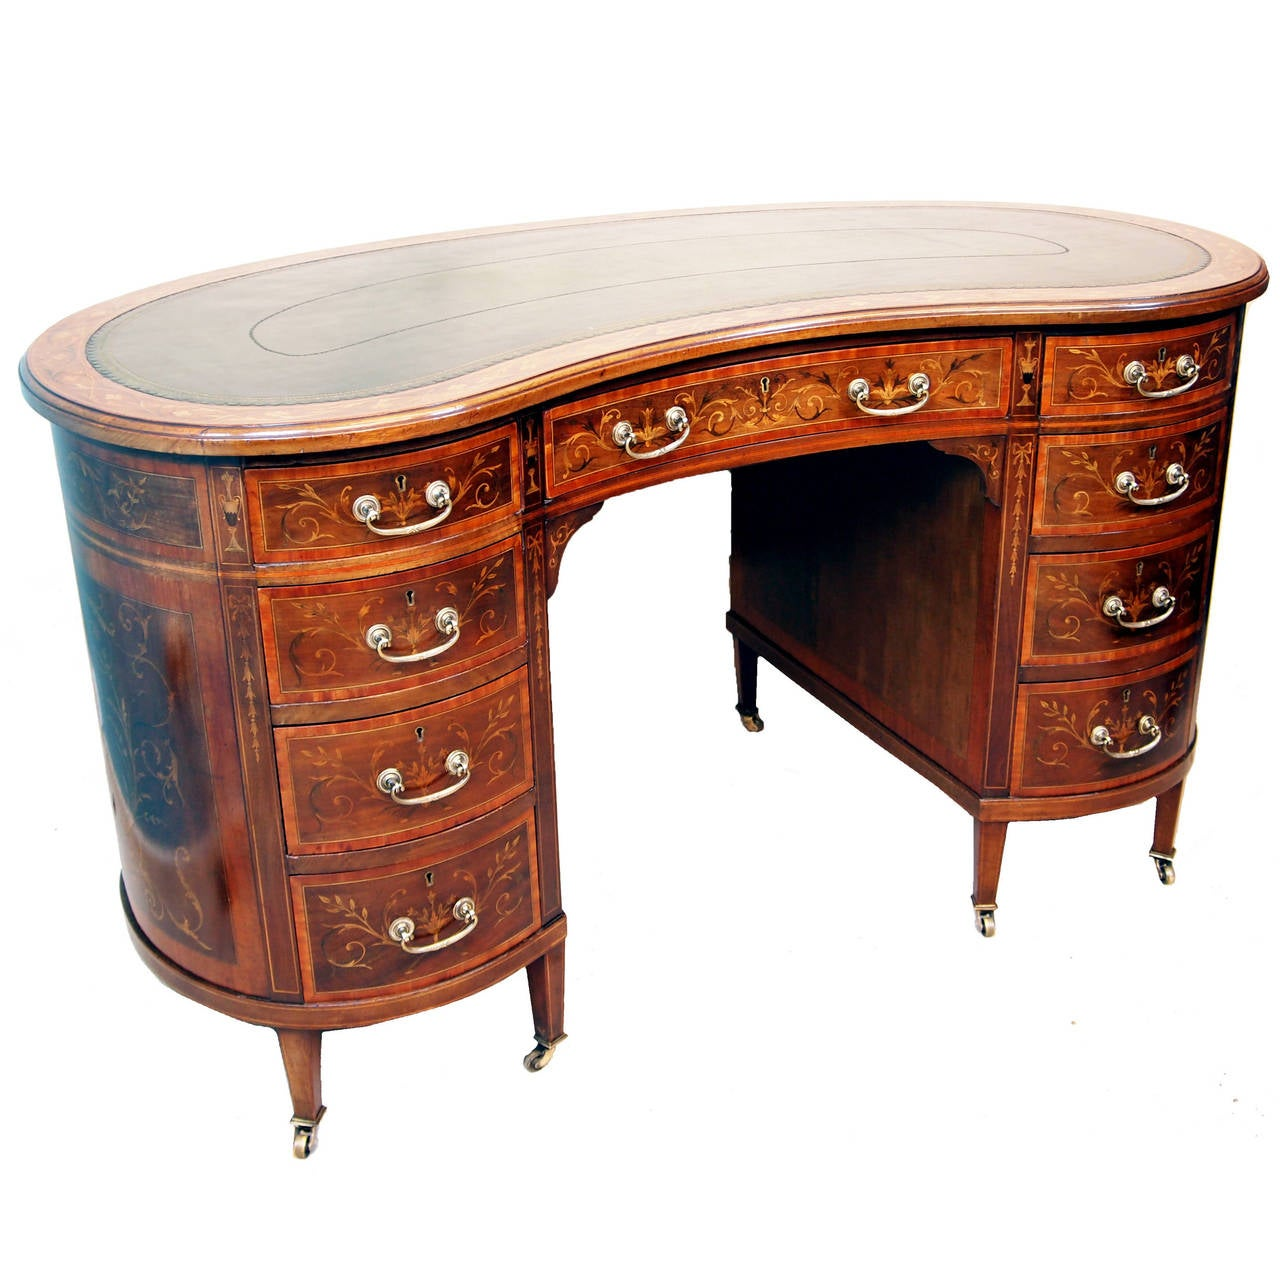 kidney writing desk Desks office desks writing desks seating office chairs cabinets file cabinets bookcases shelving & storage accessories desk lamps desk accessories .